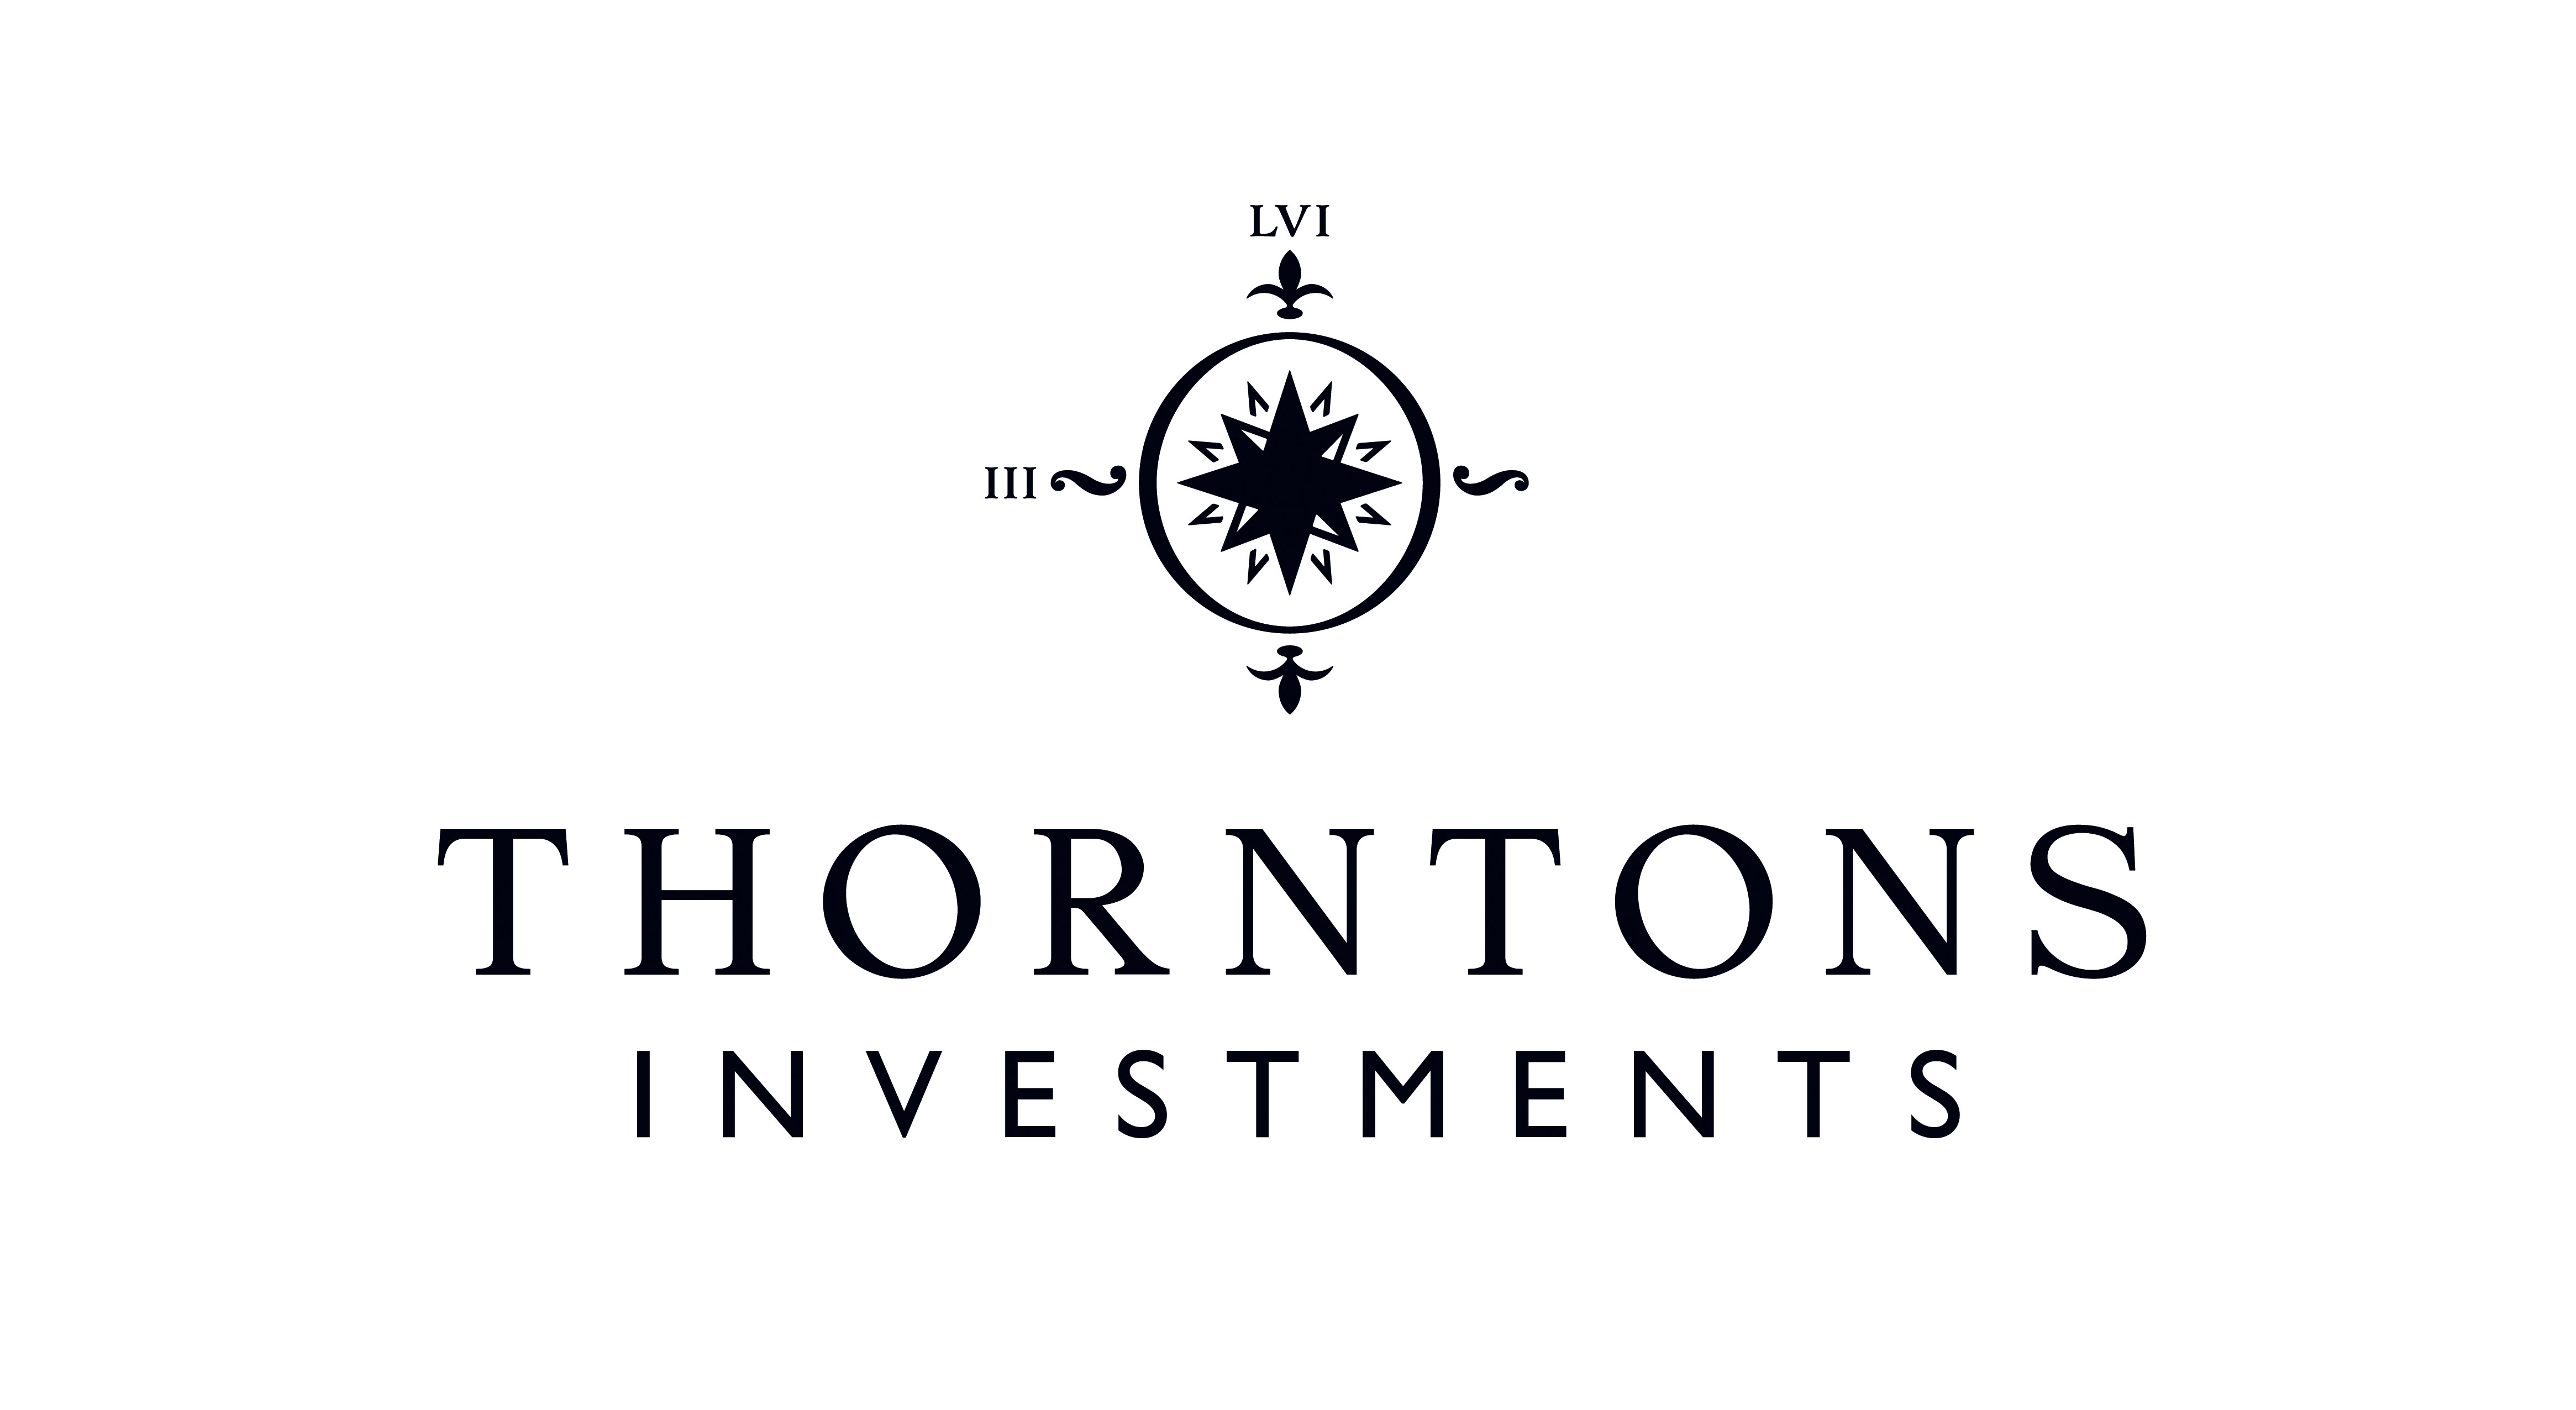 Thorntons Investment